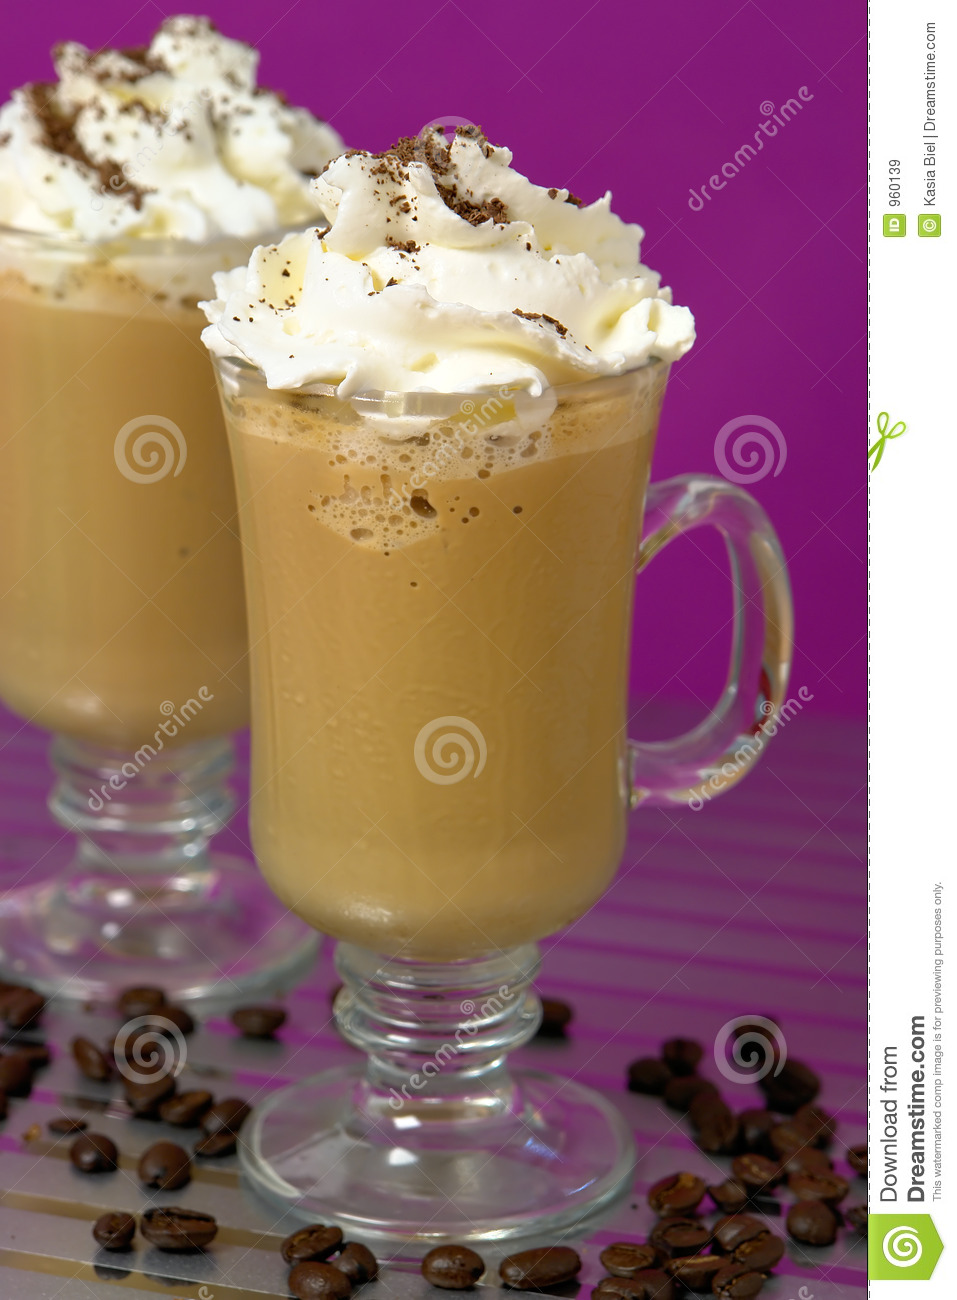 Royalty Free Stock Images  Frappuccino